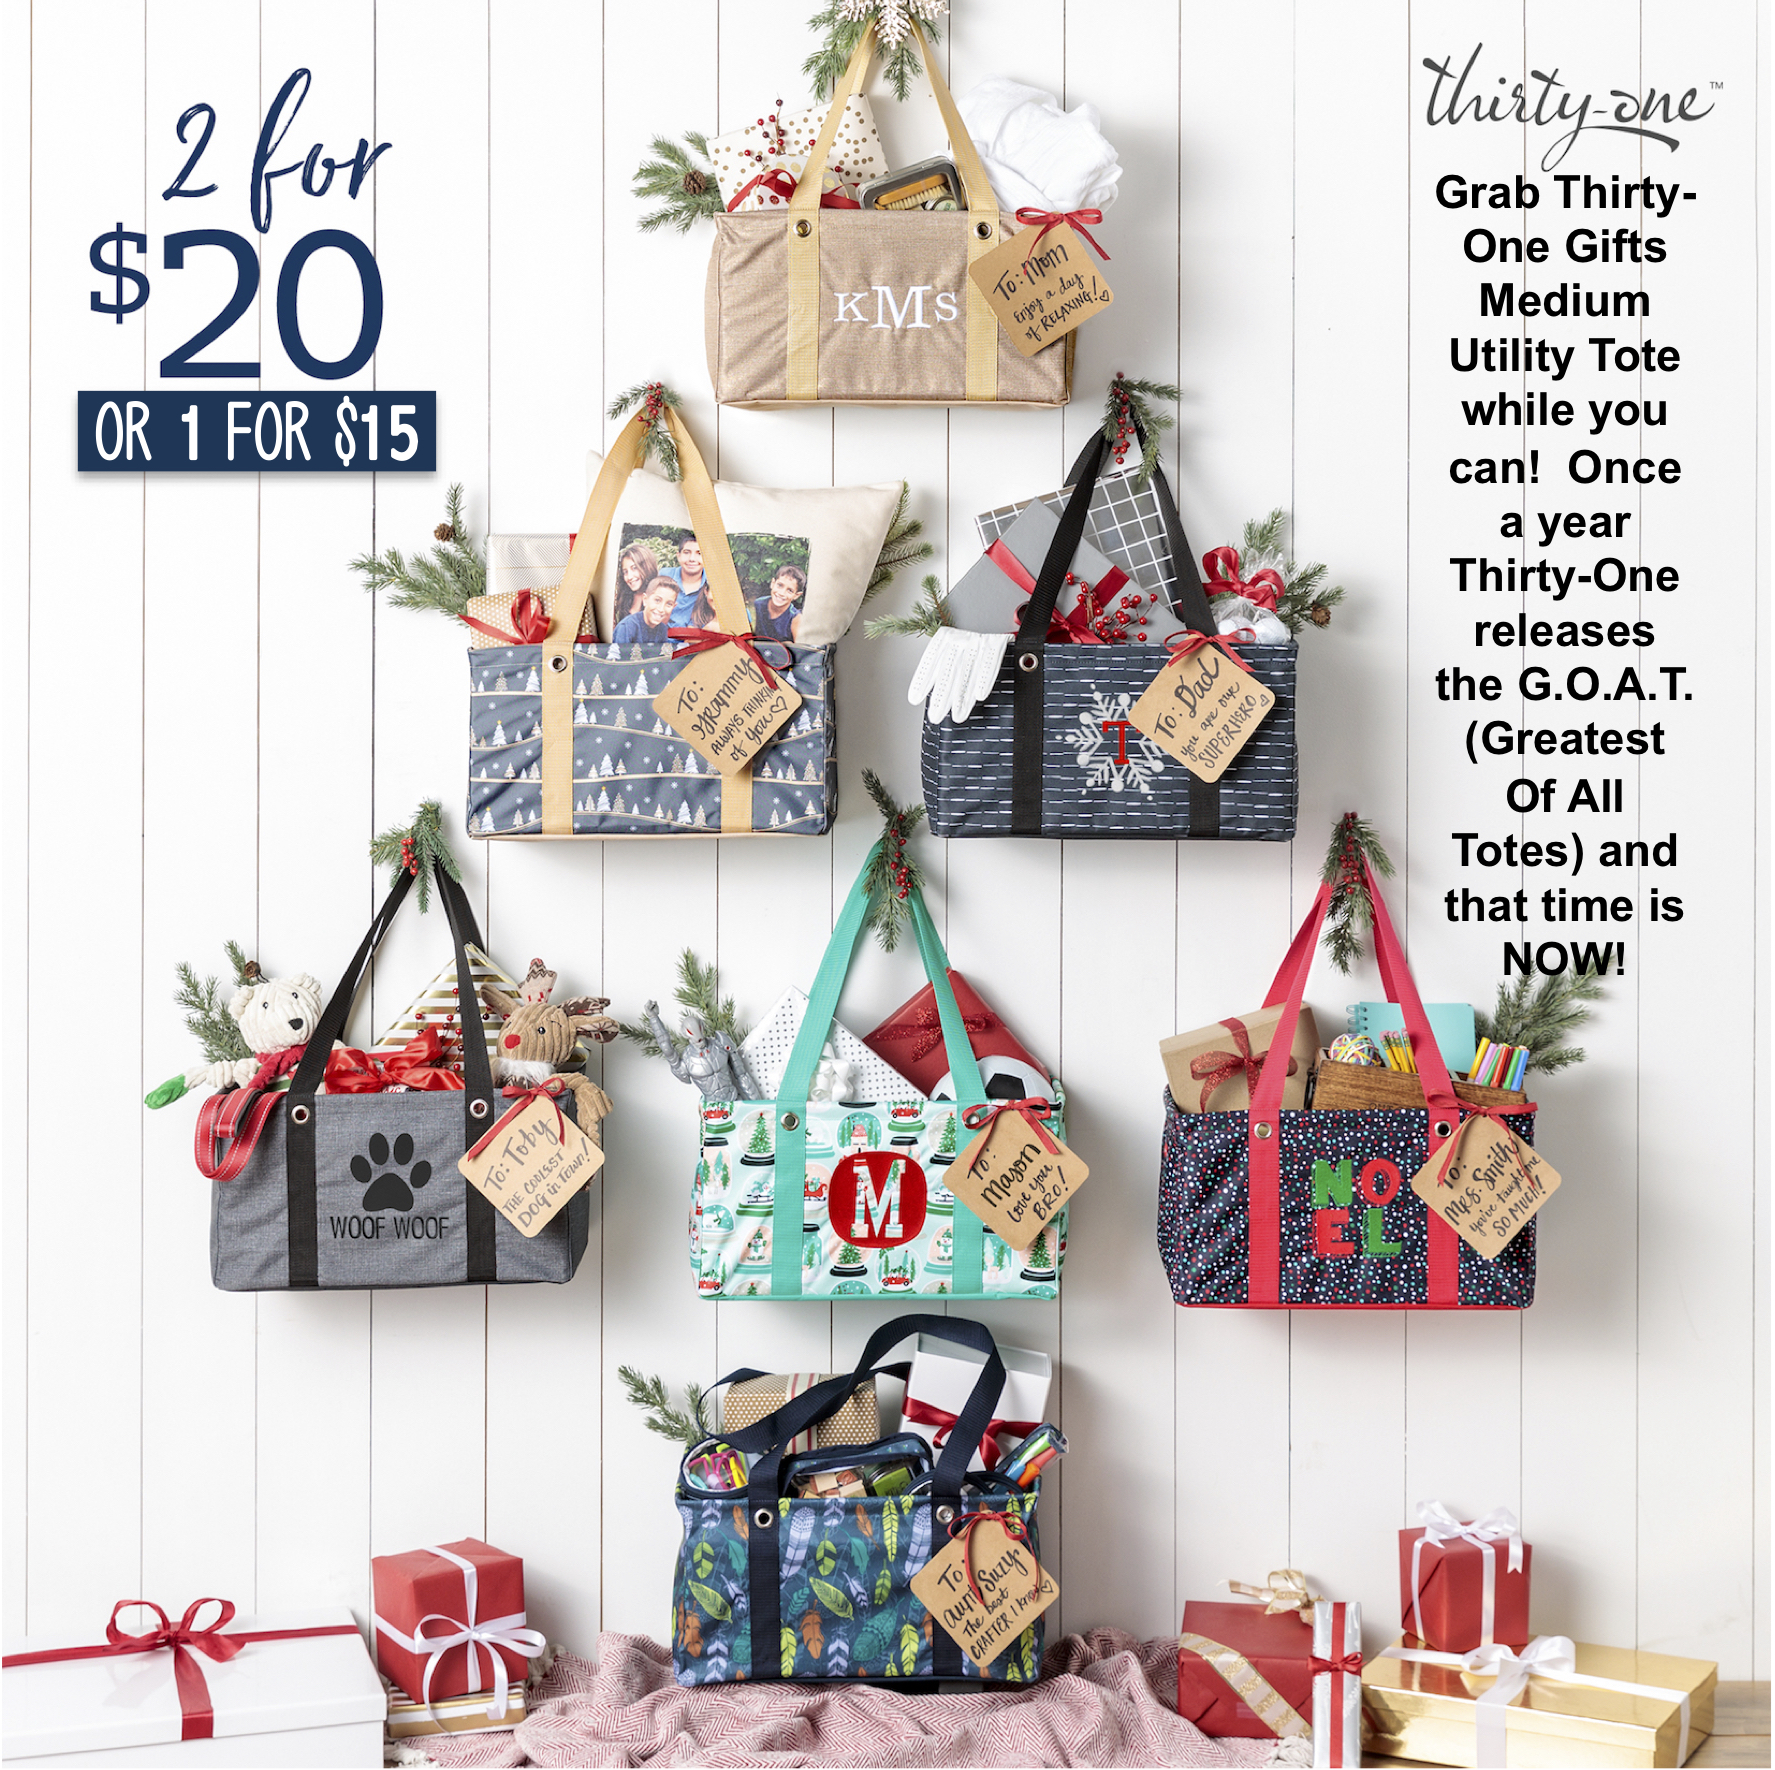 Thirty-One Gifts - Medium Utility Tote